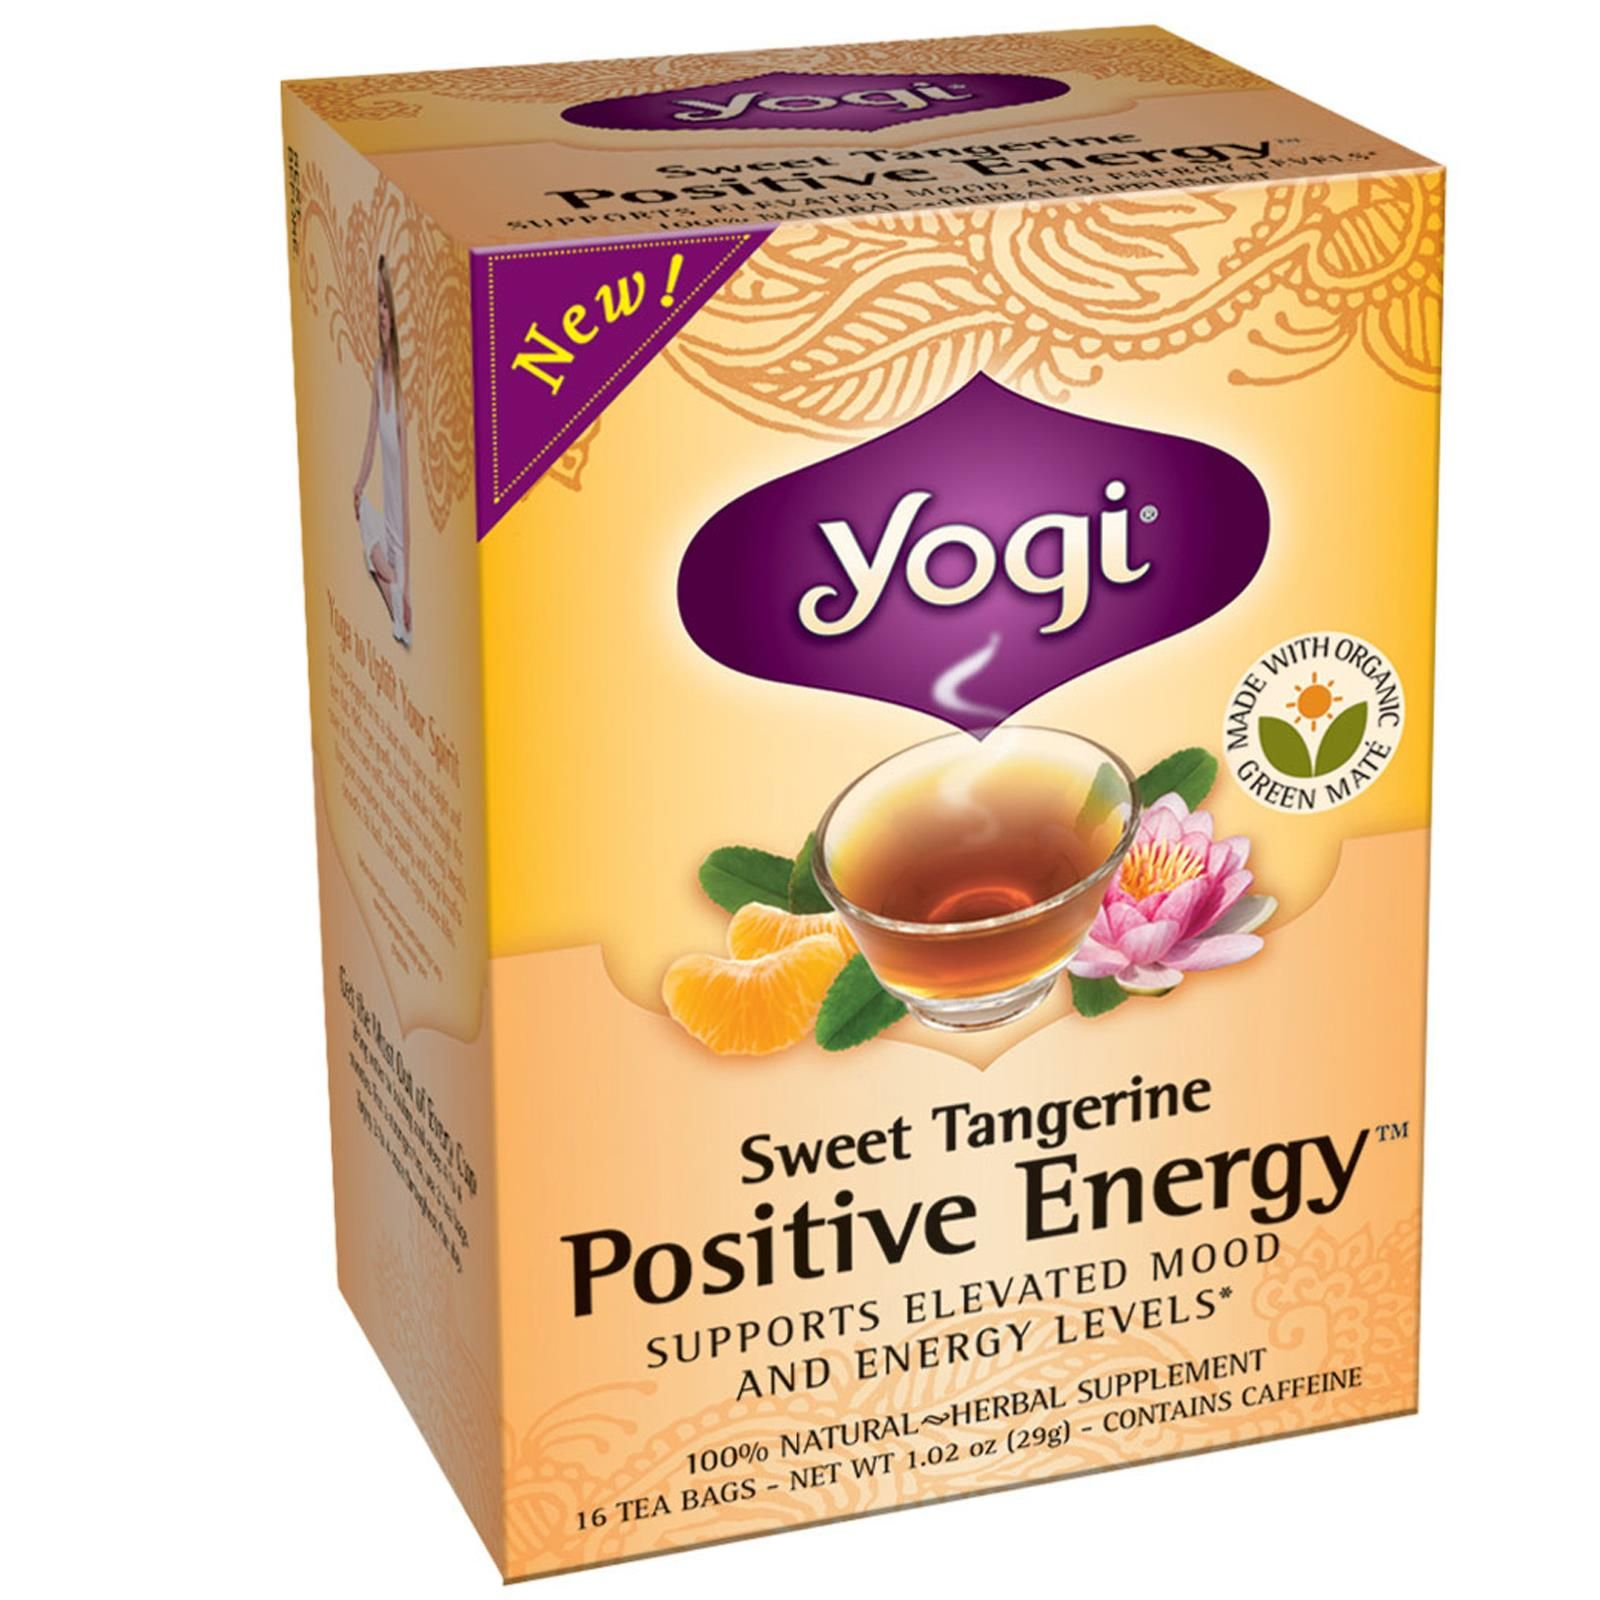 Yogi Tea Positive Energy Sweet Tangerine 16 Tea Bags 1